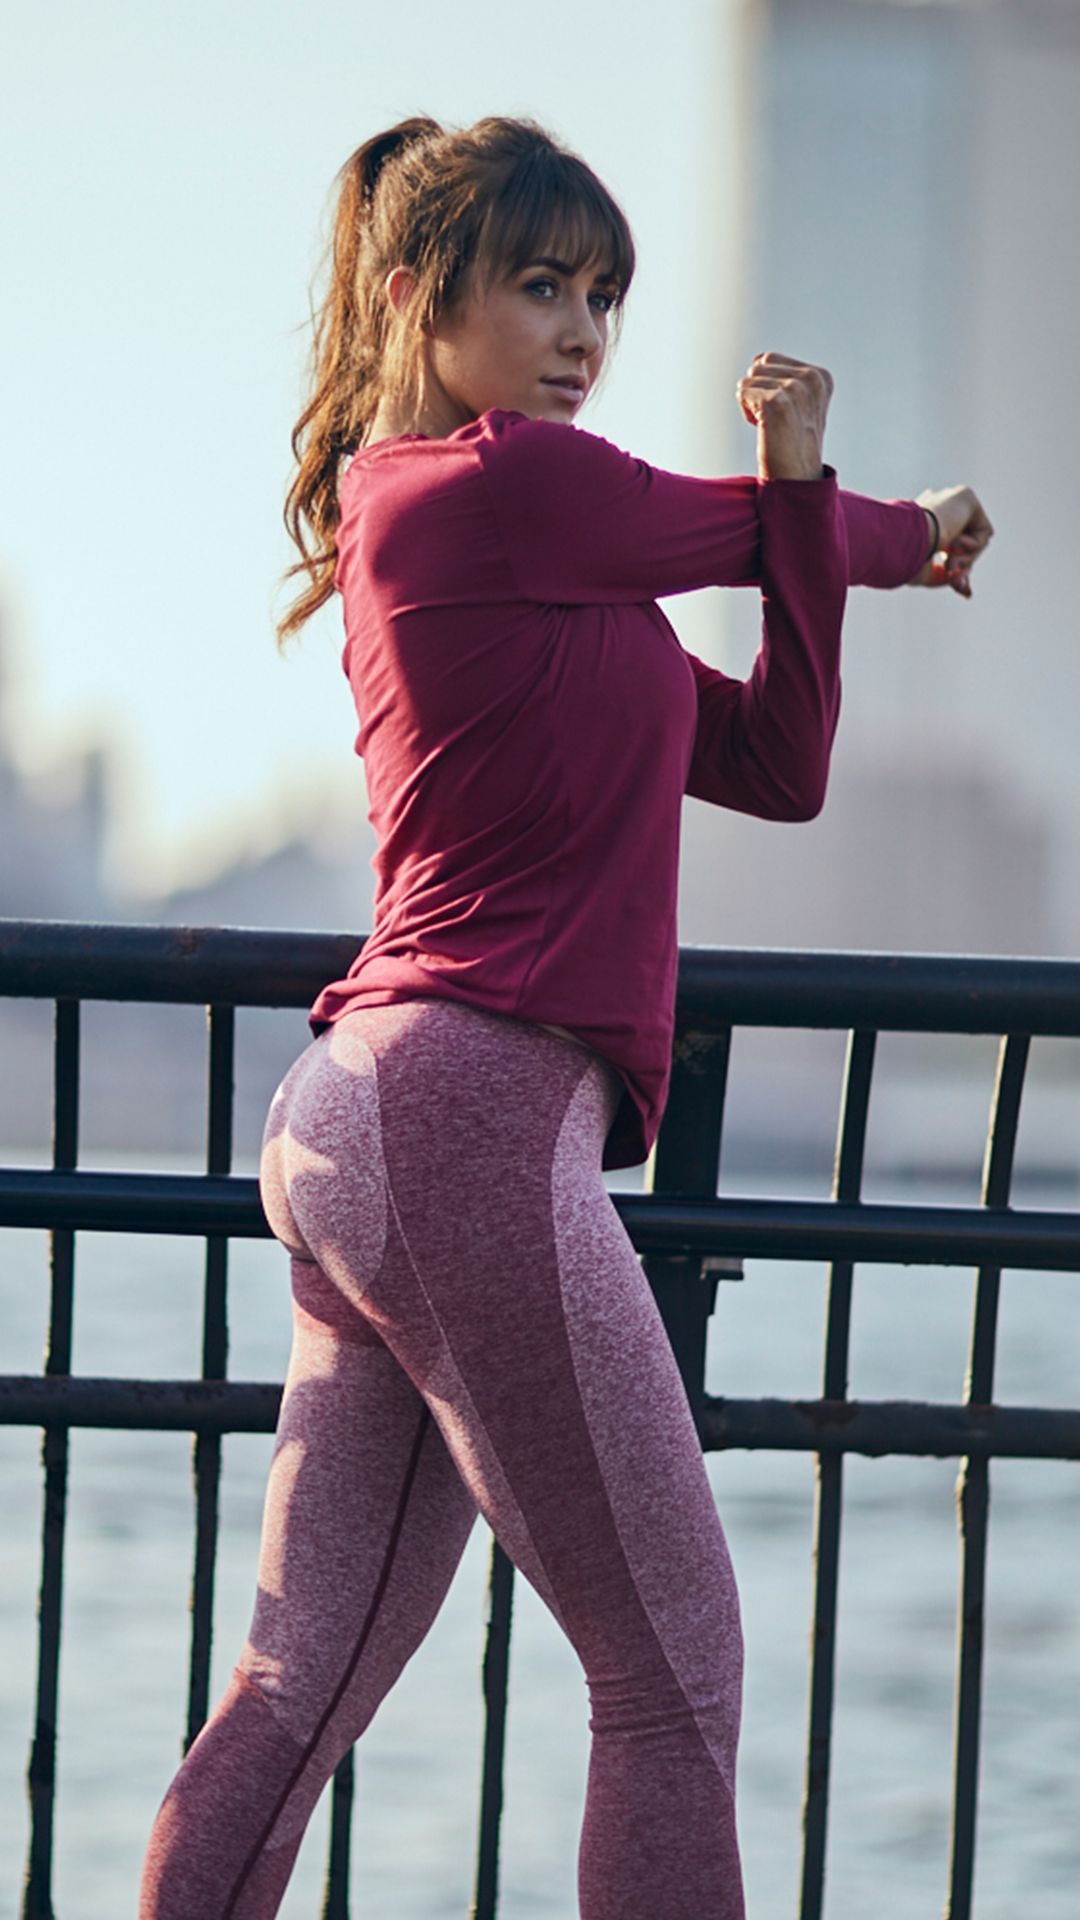 296d7c94d47f7 Courtney King wearing the Flex Legging in Beet Marl with the Apollo Long  Sleeve T-Shirt in Beet.